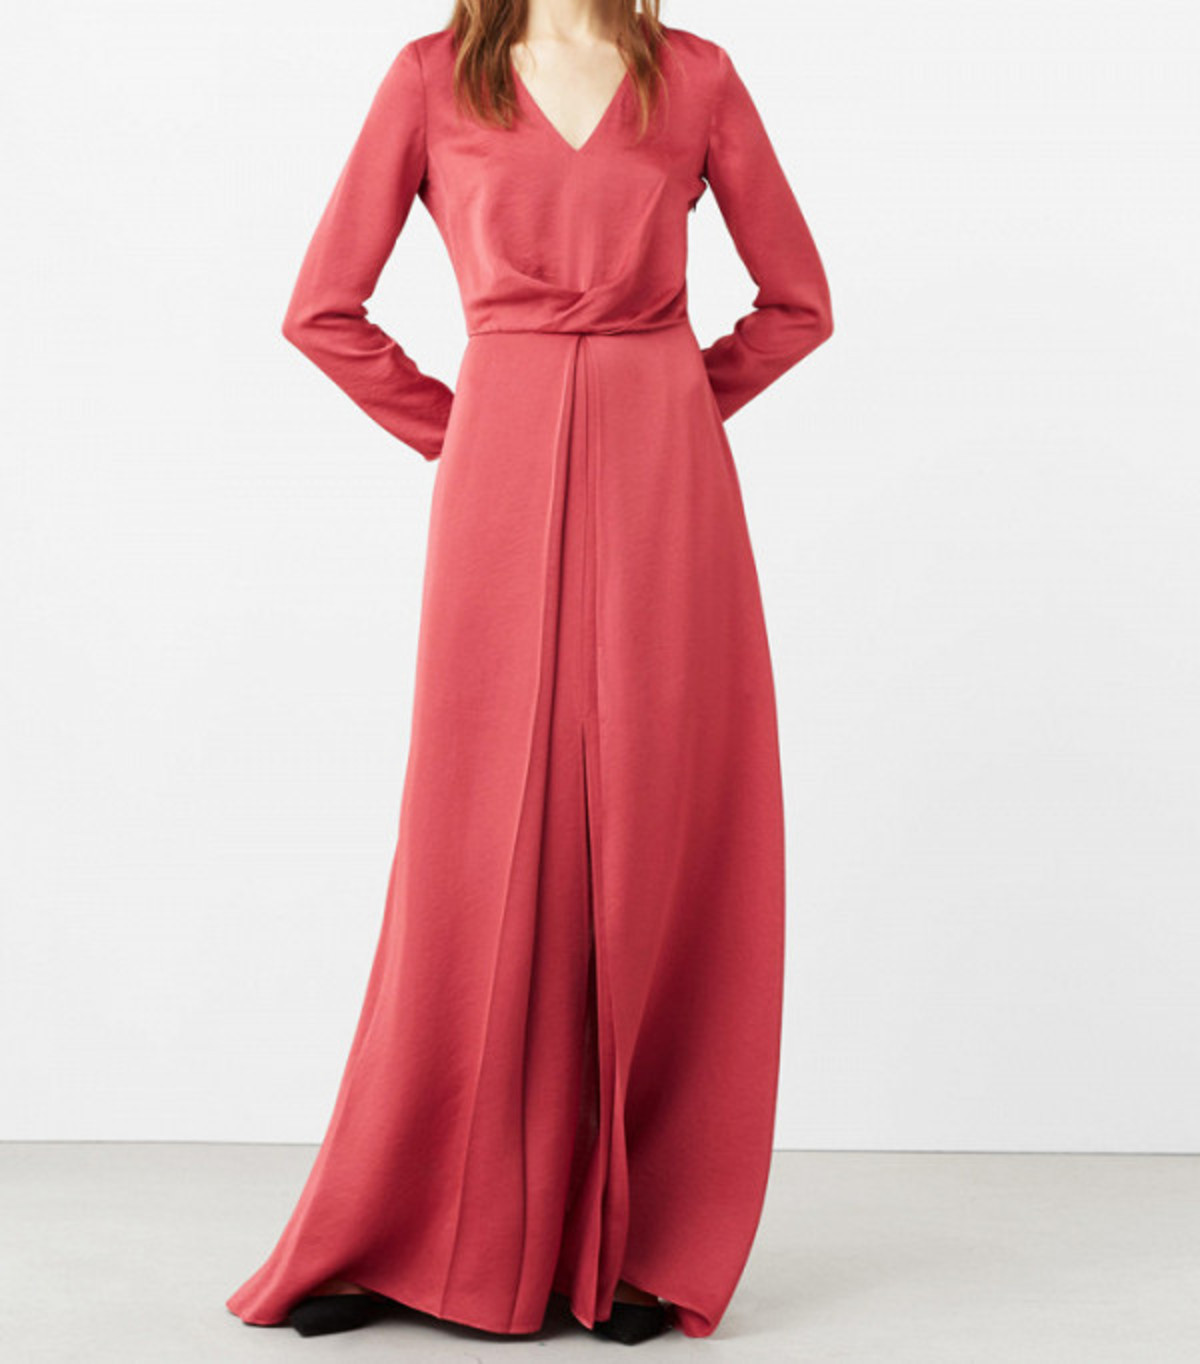 9-chic-maxi-dresses-to-wear-for-autumn-1948031-1477067236.600x0c